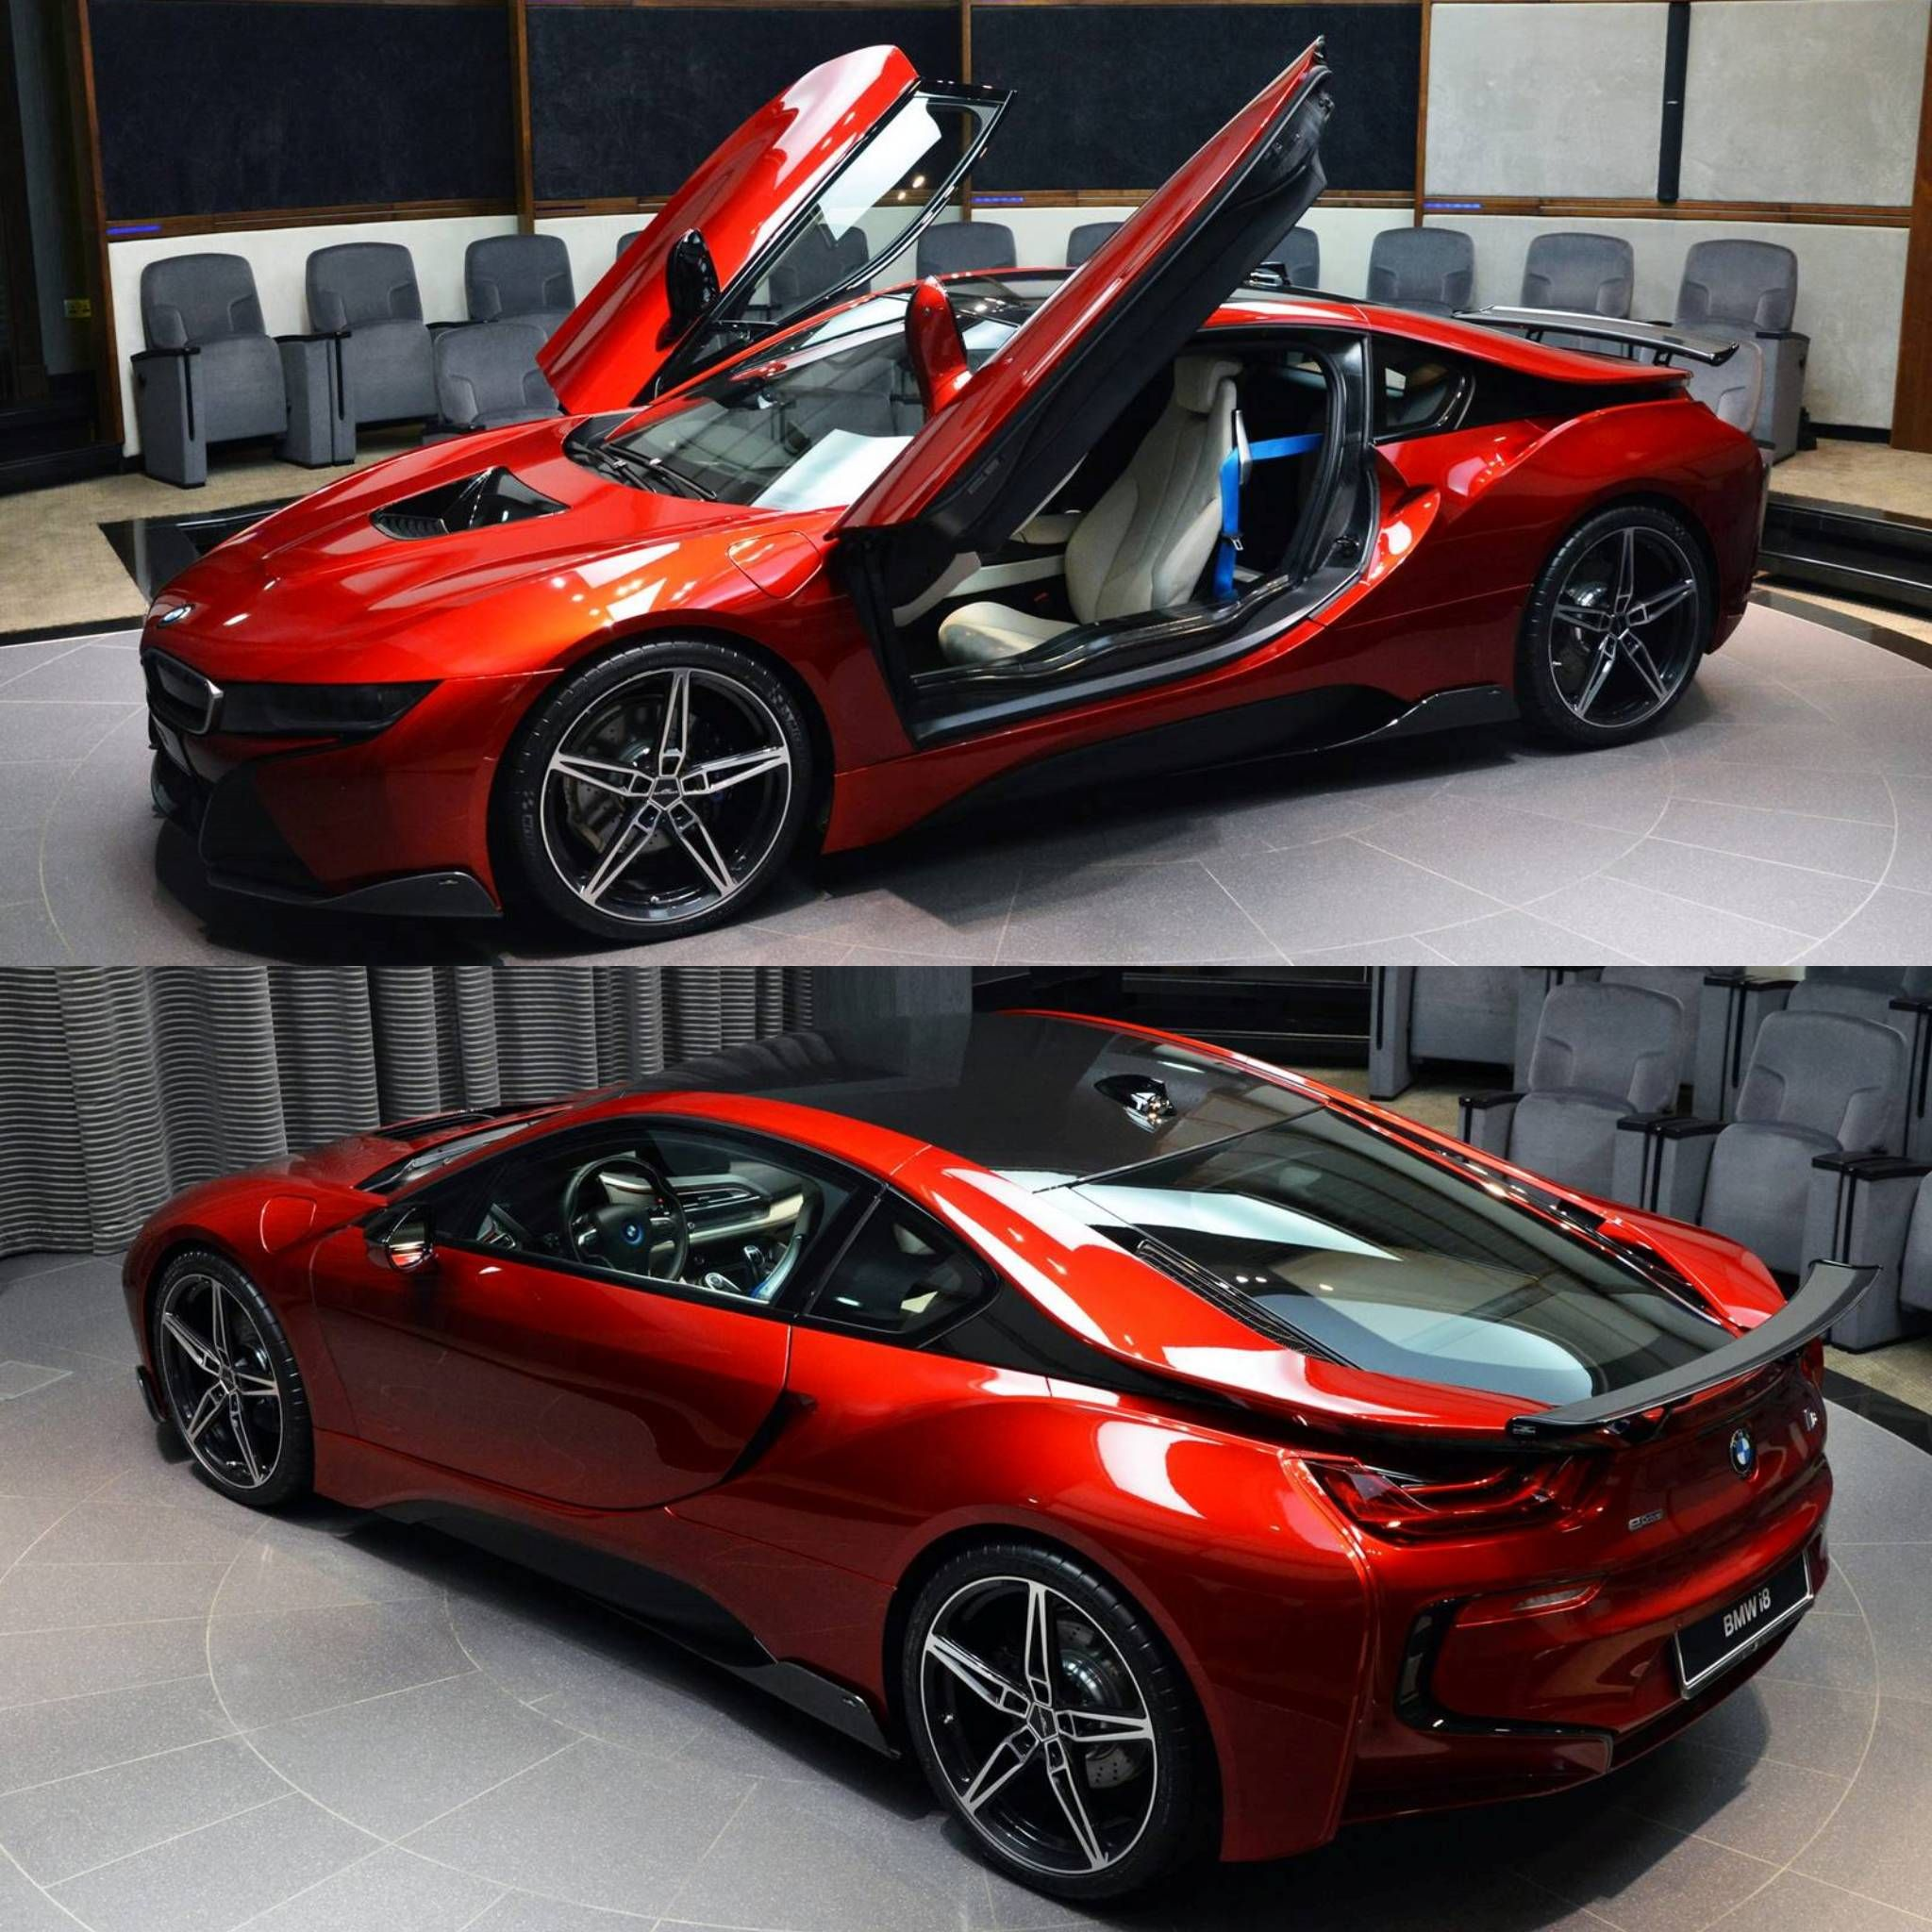 bmw i8 coupe edrive red devil fire rainbow